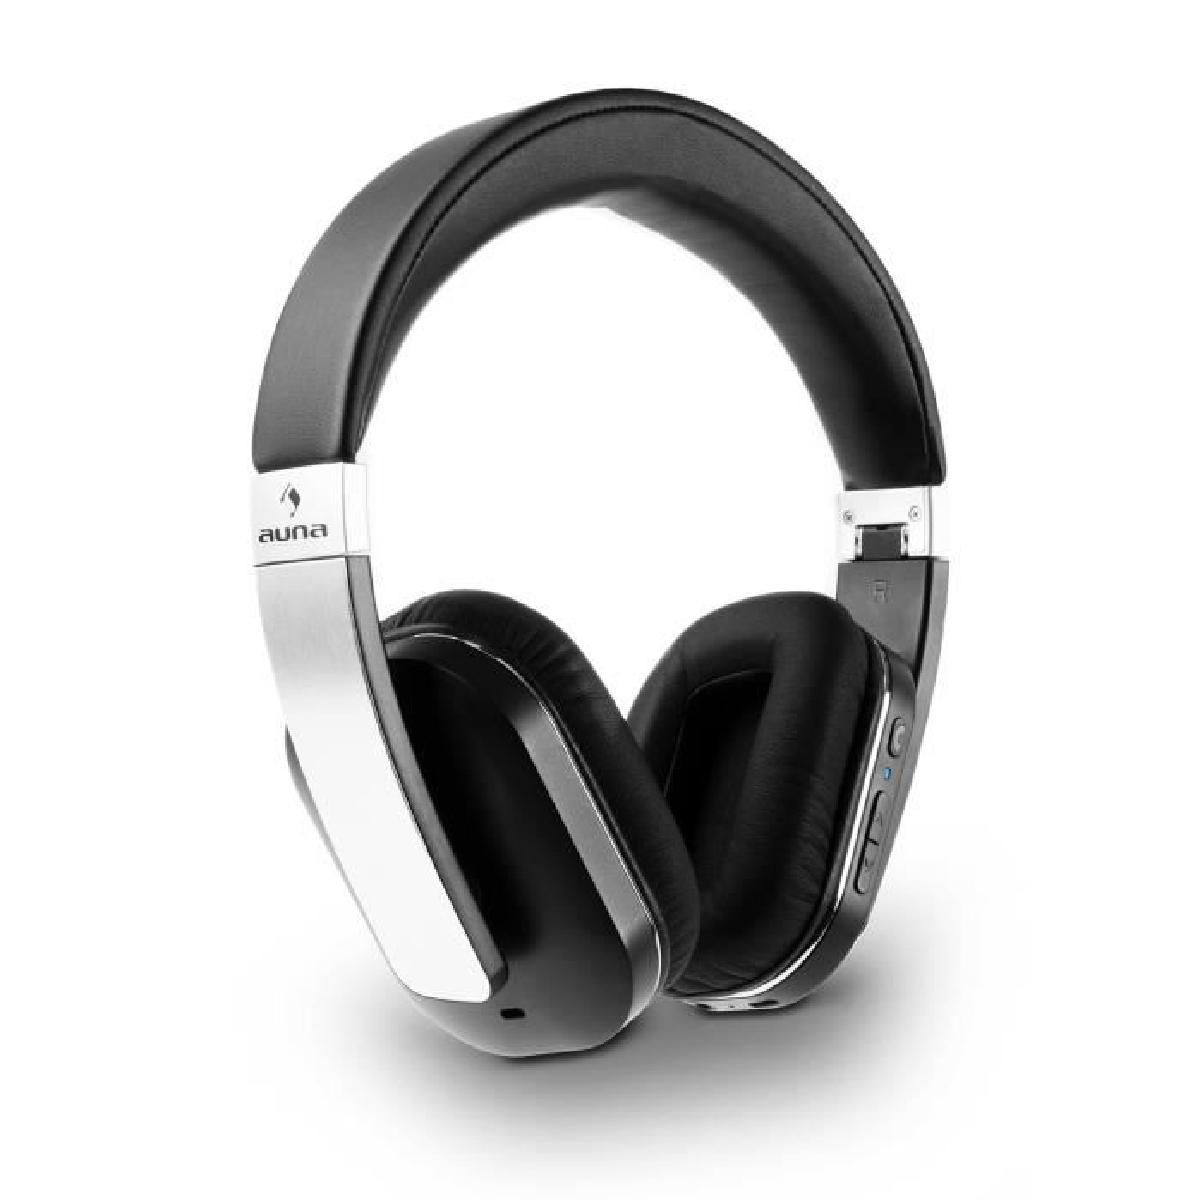 Casque audio Bluetooth : Comment se procurer un casque dans le commerce ?